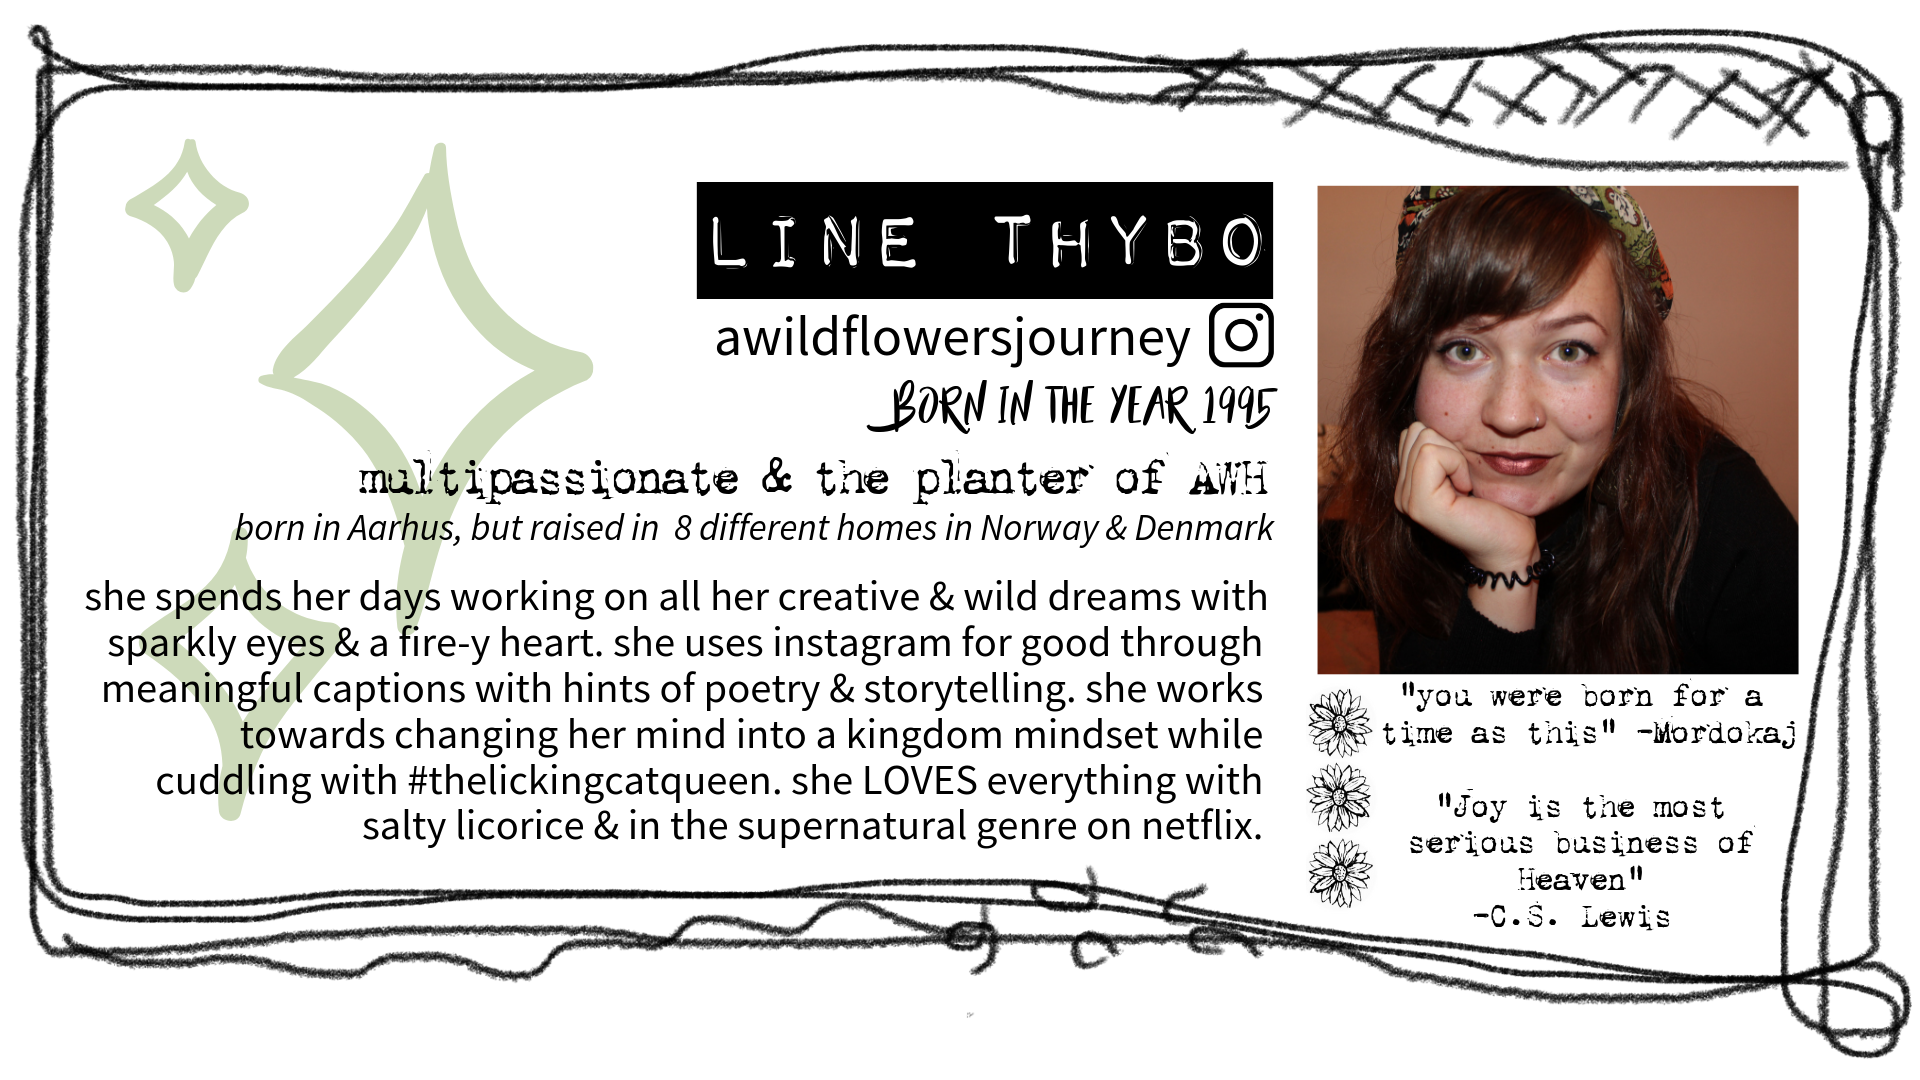 A Wildflowers Home // Line Thybo Visitkort // awildflowersjourney // AWH